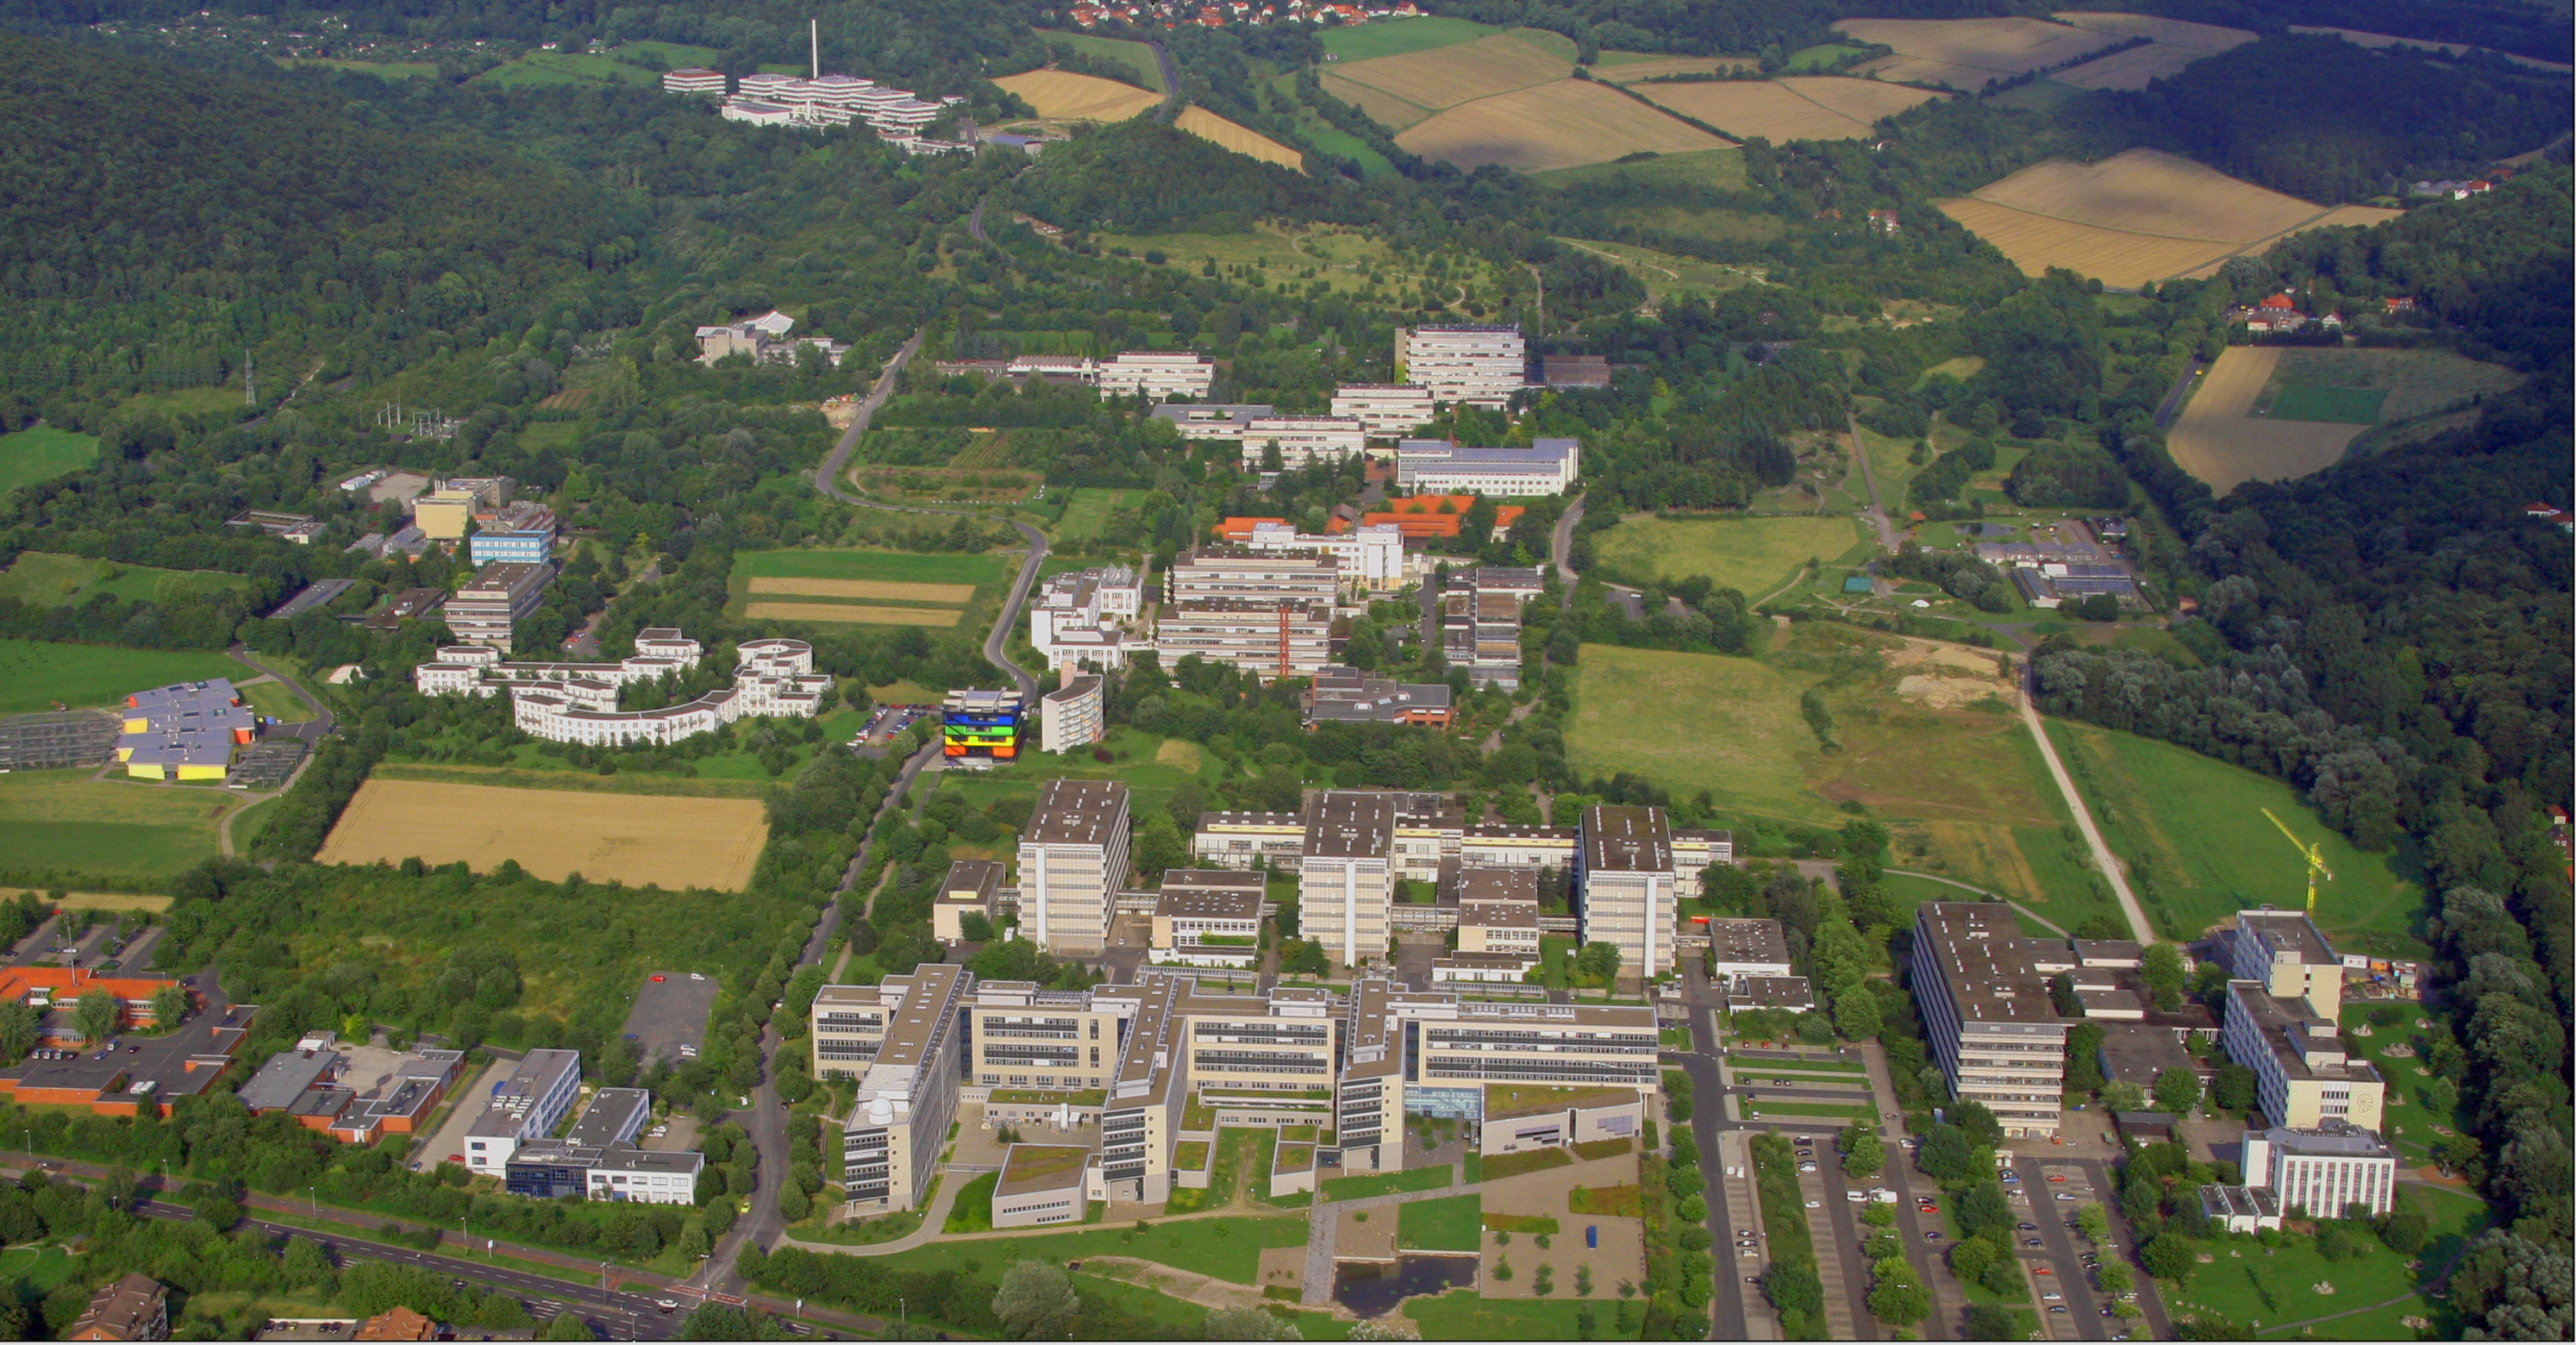 Nordcampus Uni Goettingen